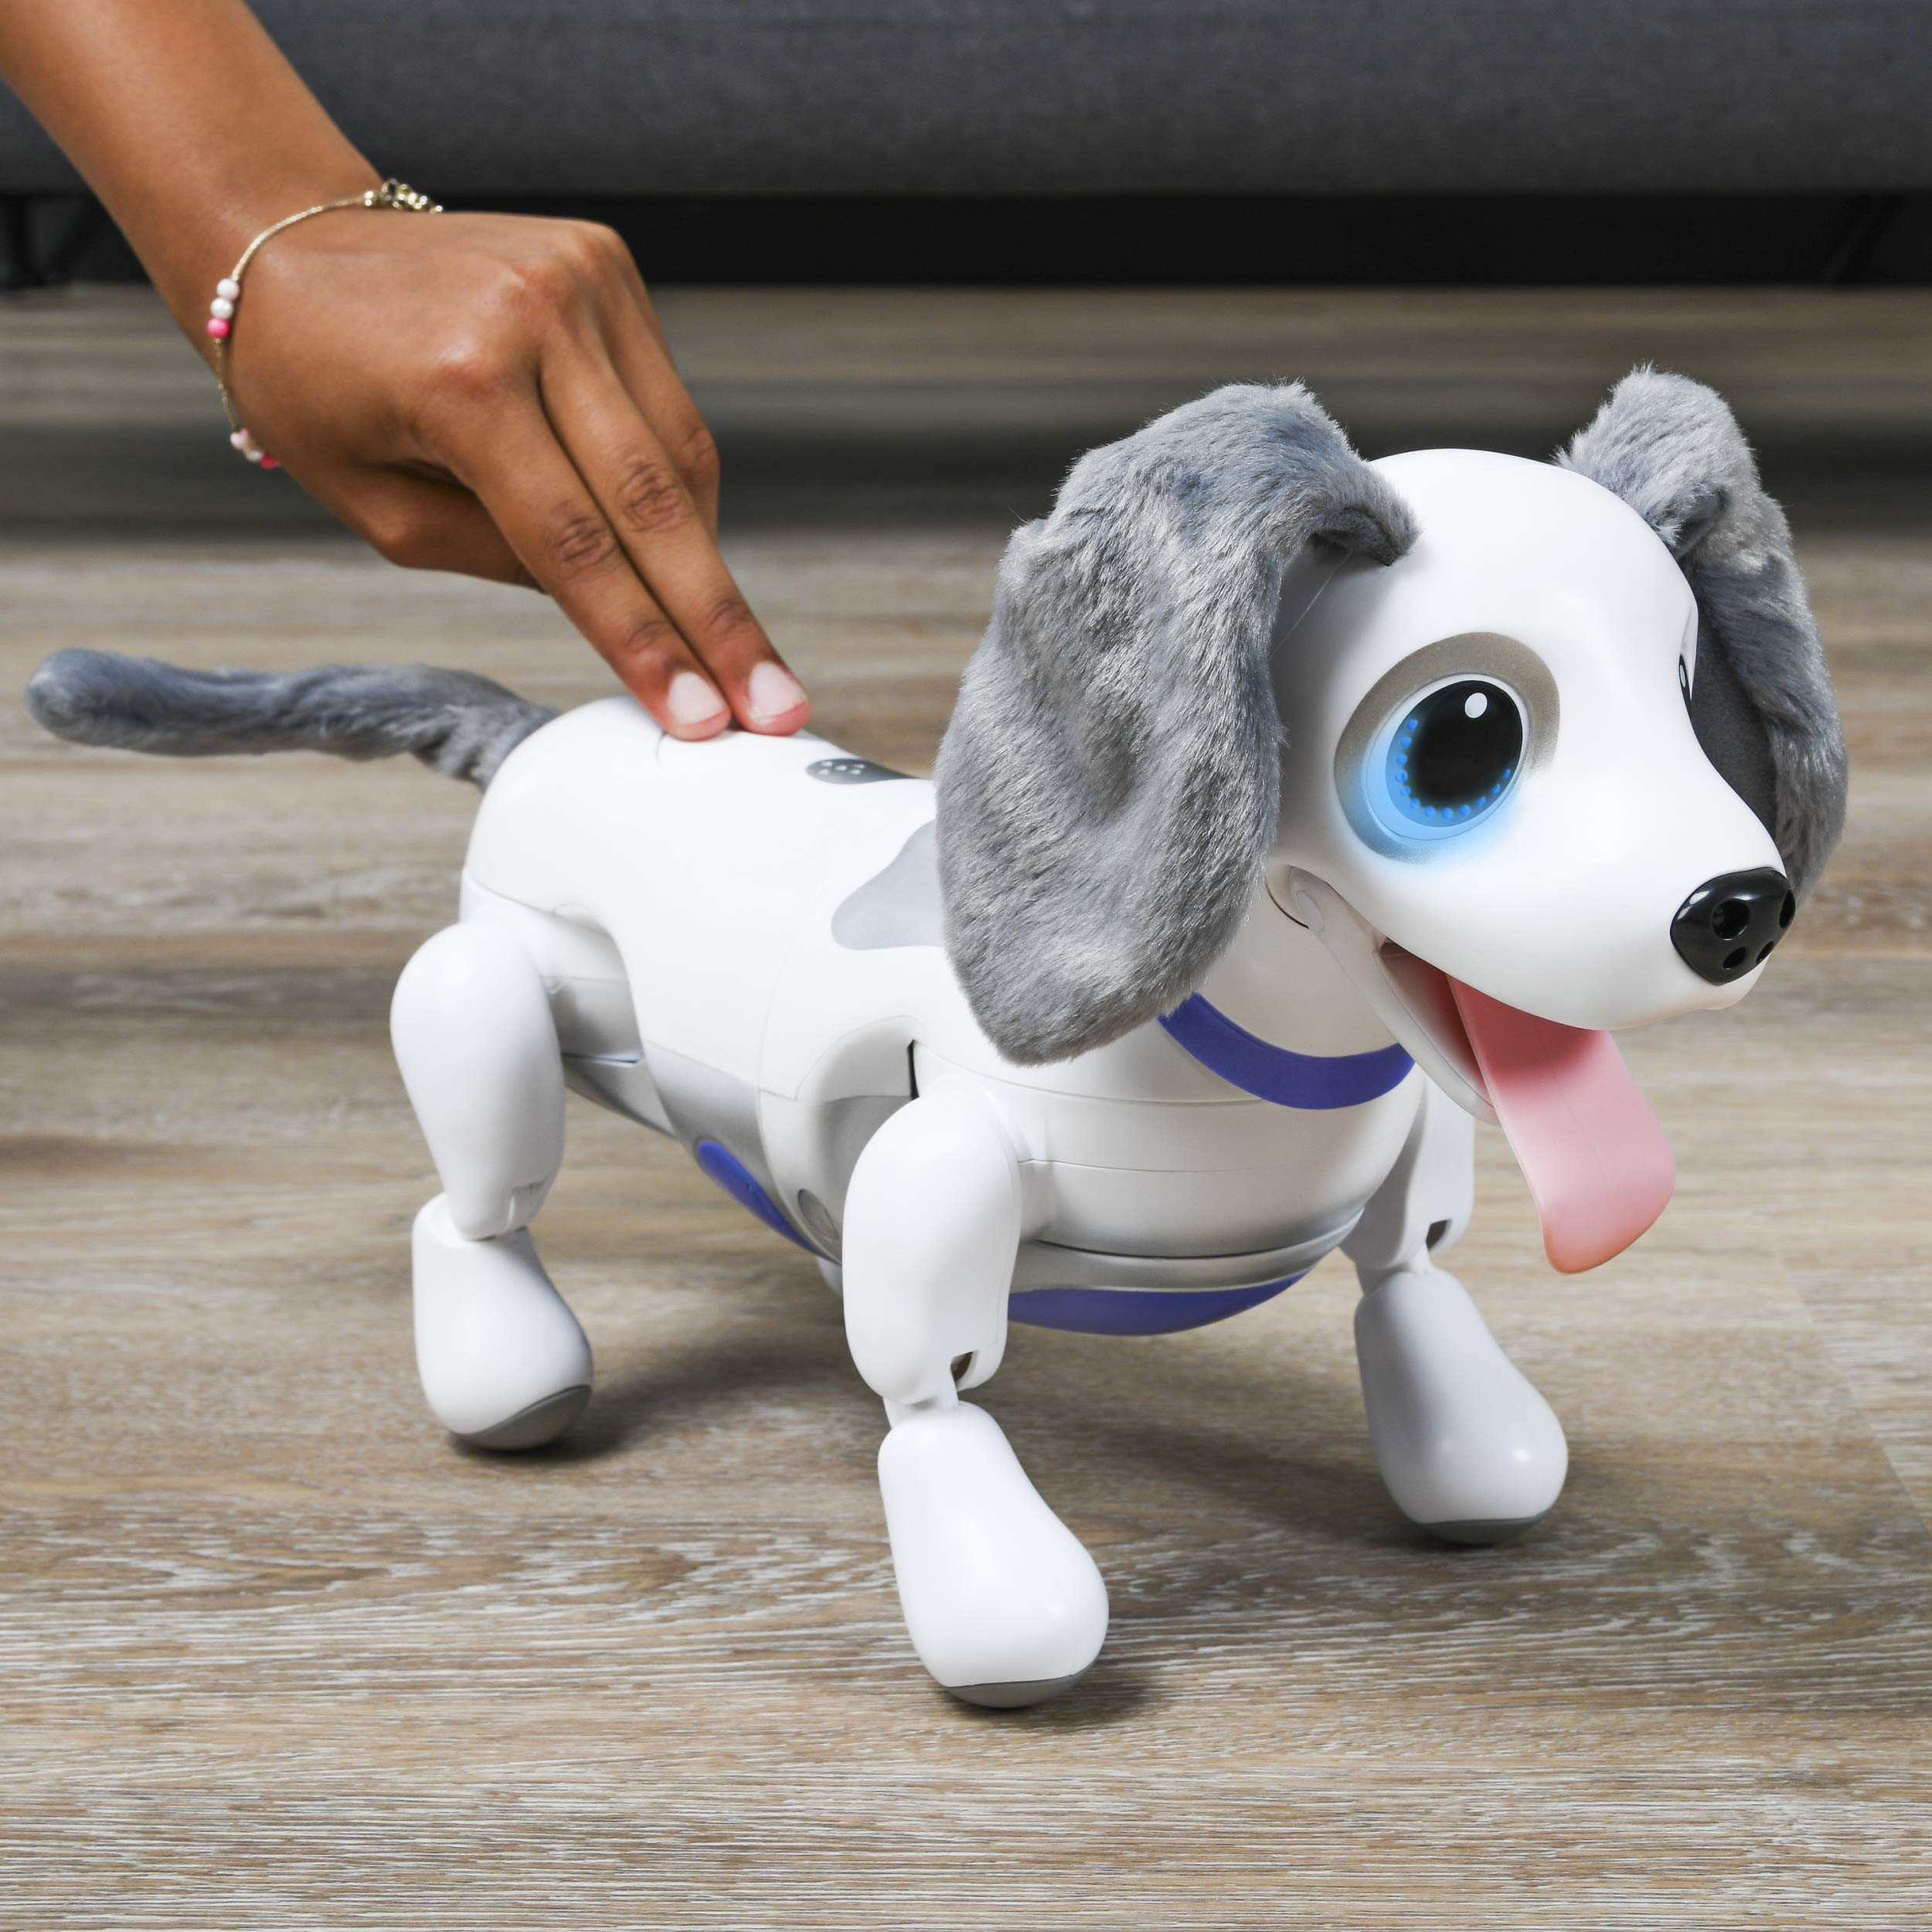 zoomer Playful Pup, Responsive Robotic Dog with Voice Recognition & Realistic Motion, For Ages 5 & Up by Zoomer (Image #5)